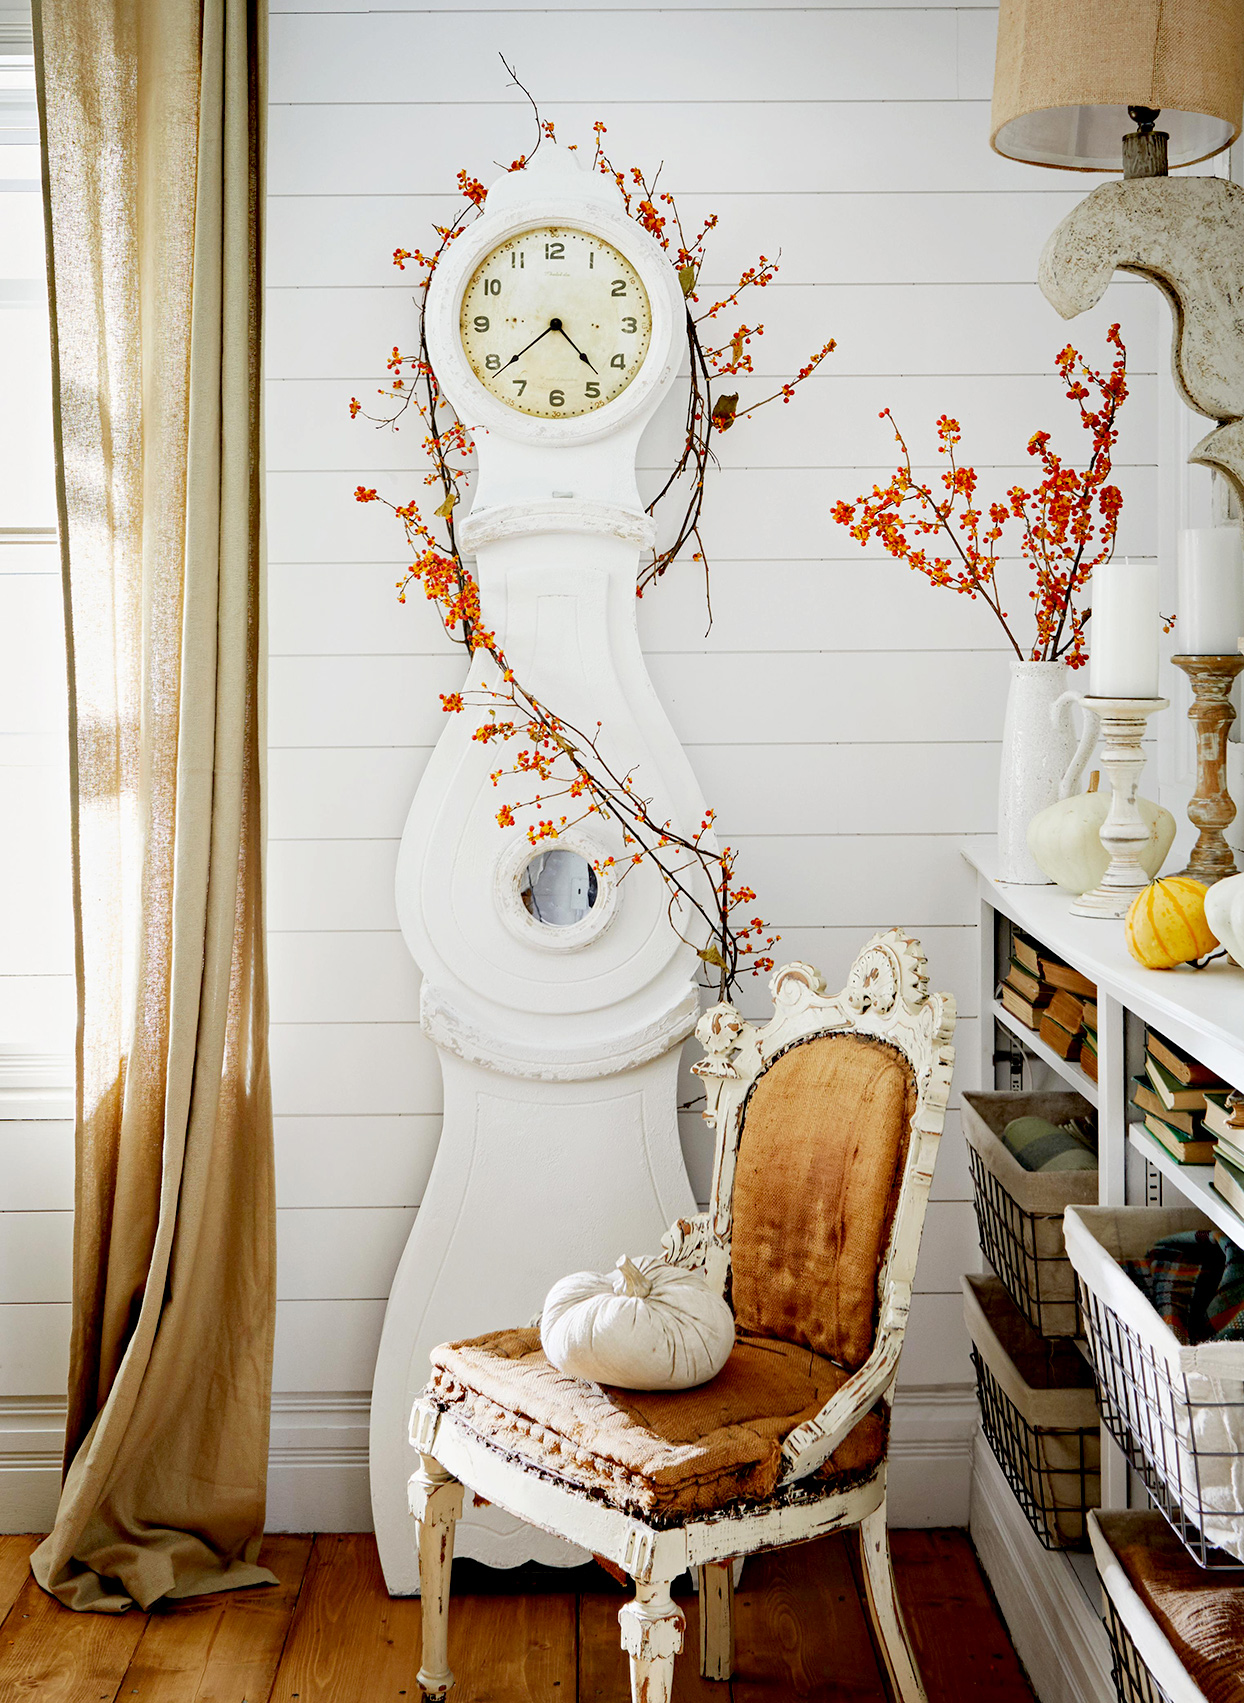 White clock and chair with fall décor